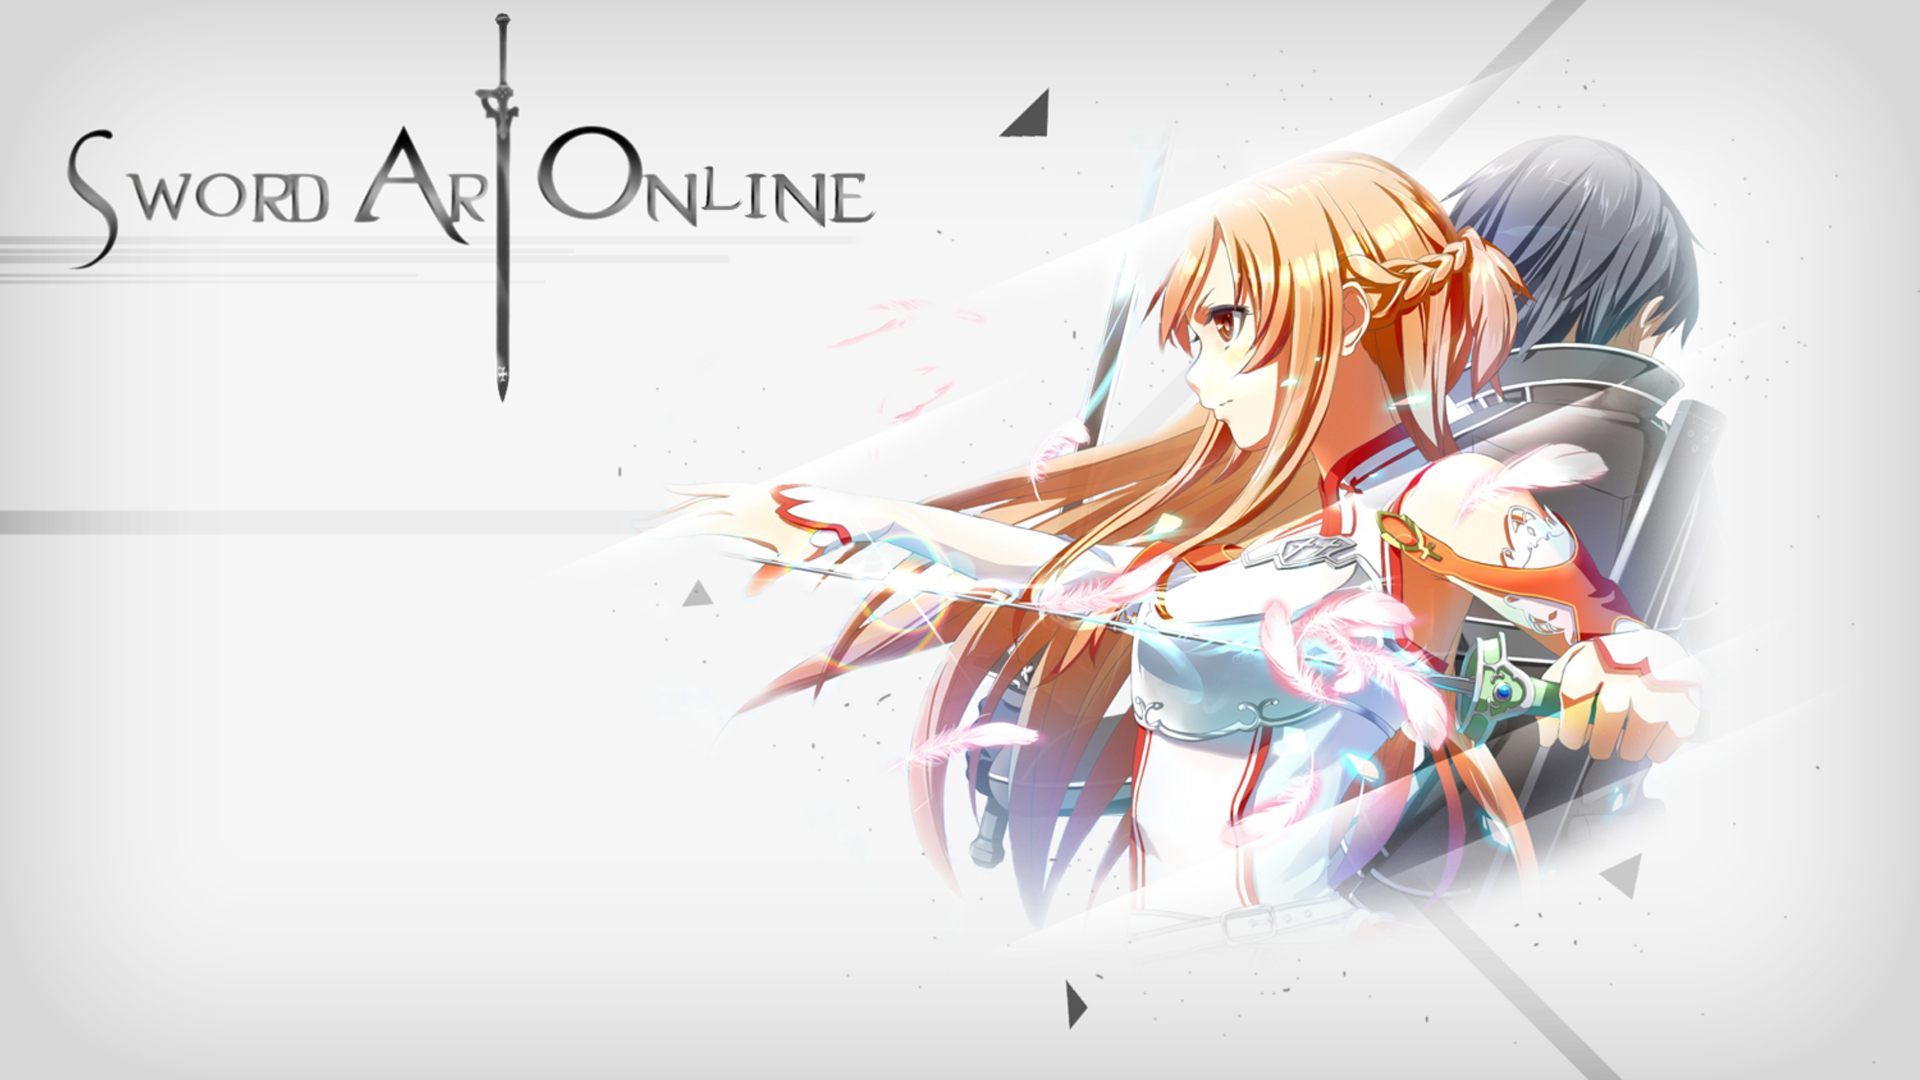 ... SAO-Hd-Wallpaper | Desktop Backgrounds for Free HD Wallpaper | wall